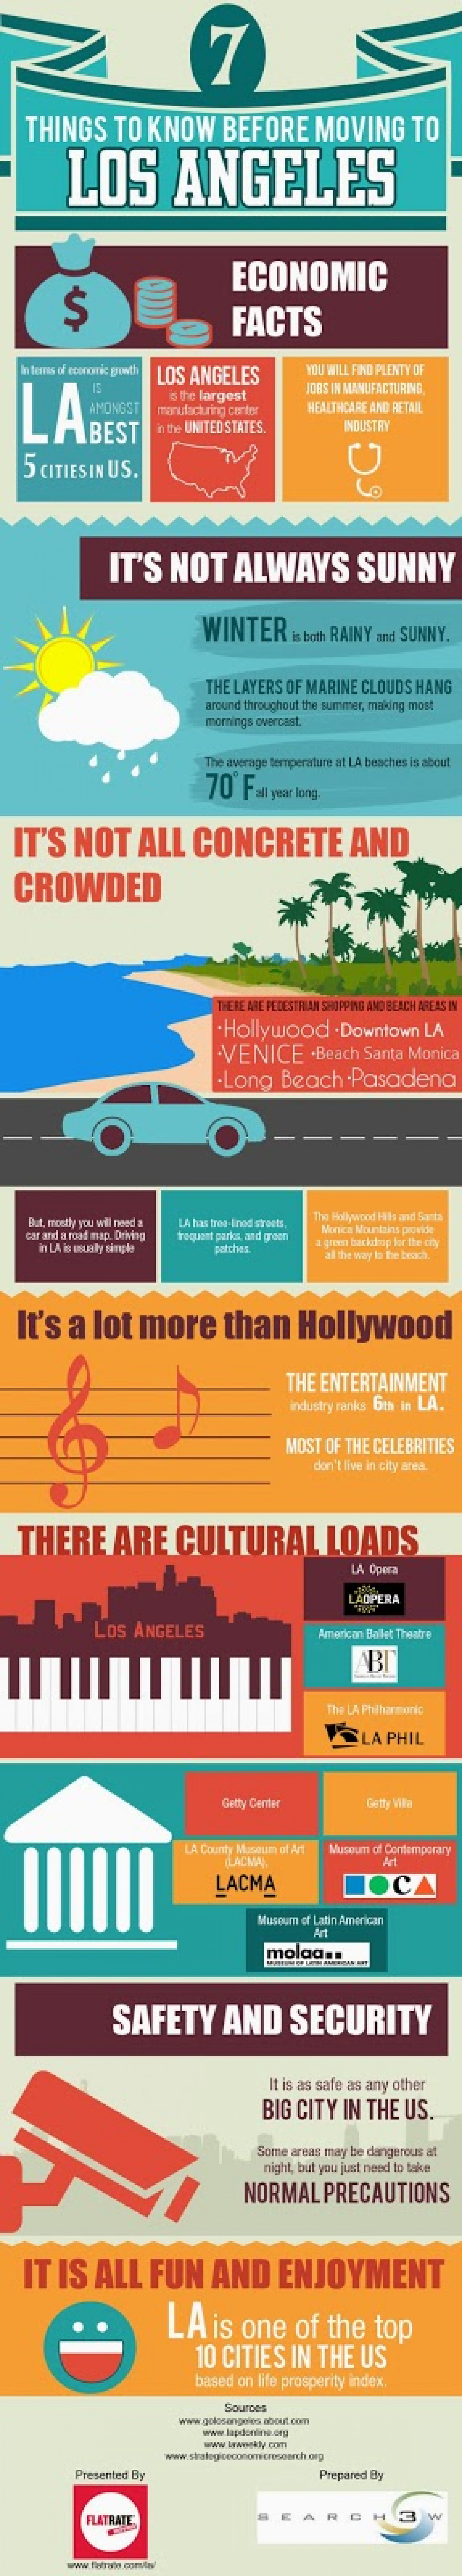 7 Things to Know Before Moving to Los Angeles Infographic